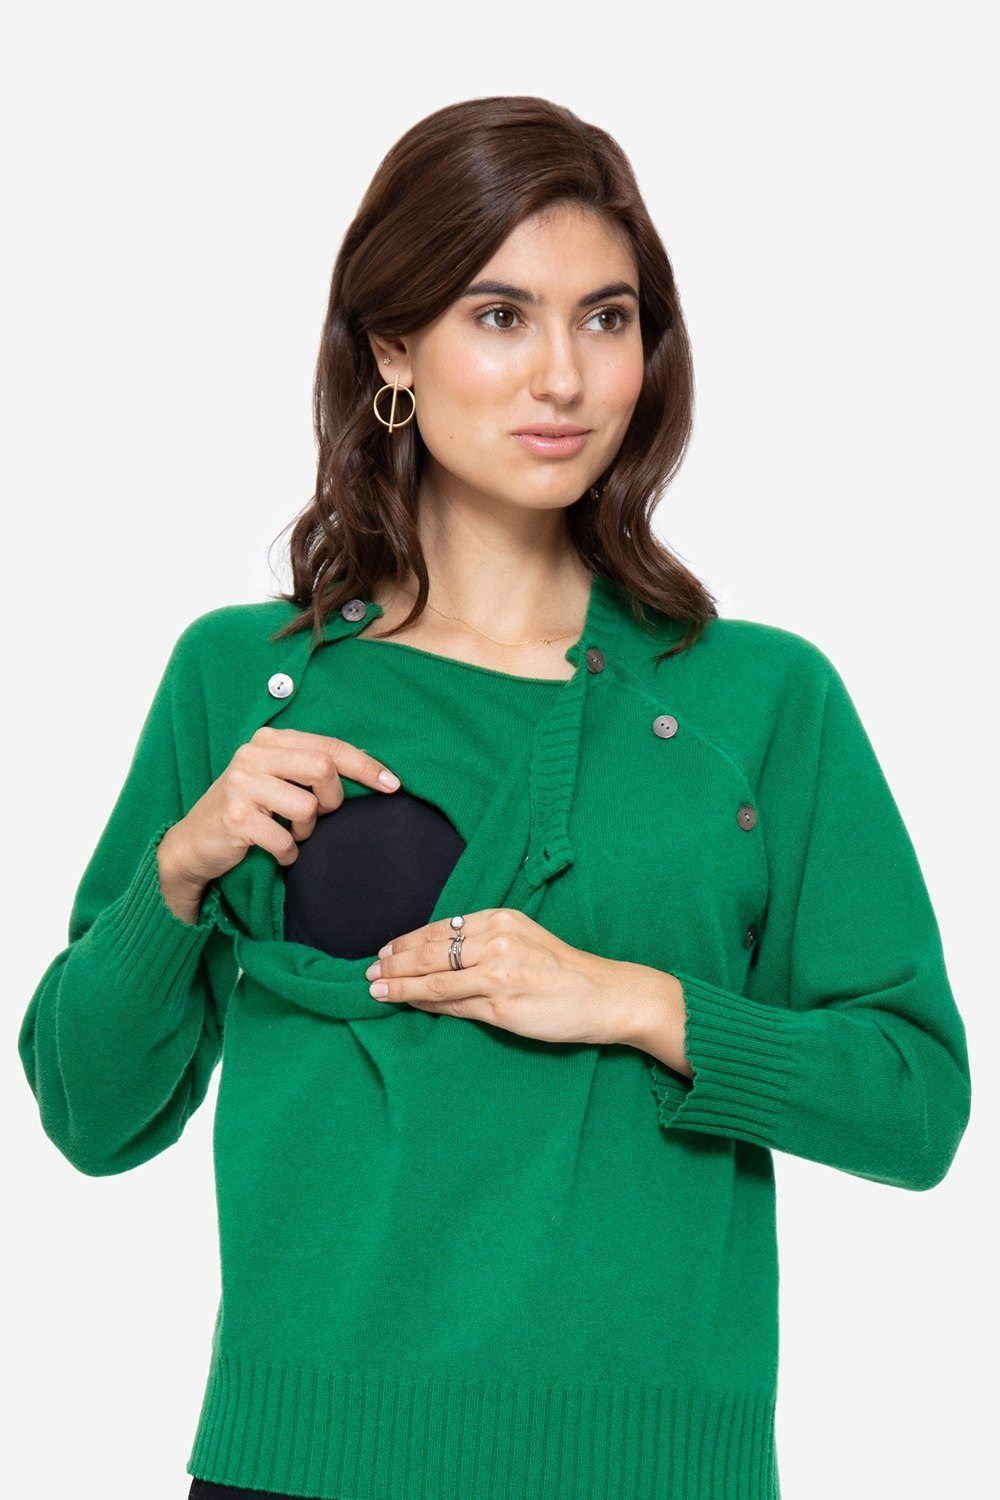 Soft green cashmere nursing jumper with buttons access, for breastfeeding